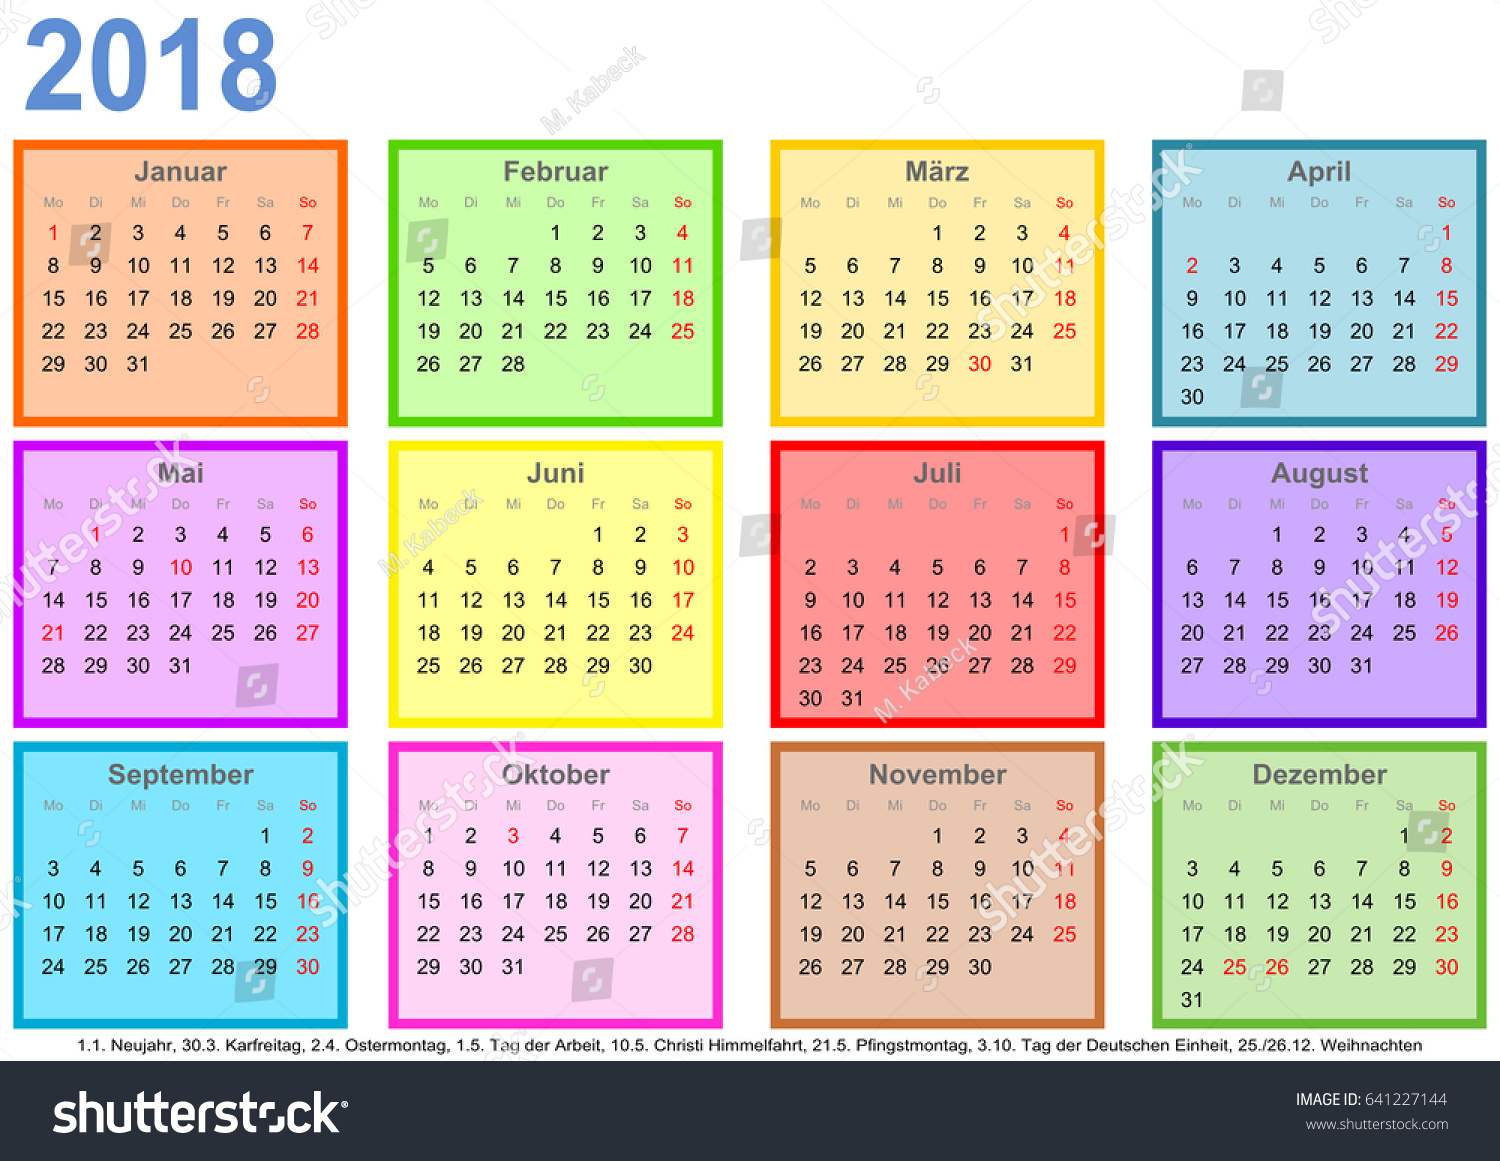 Royalty Free Calendar 2018 Each Month In A 641227144 Stock Photo